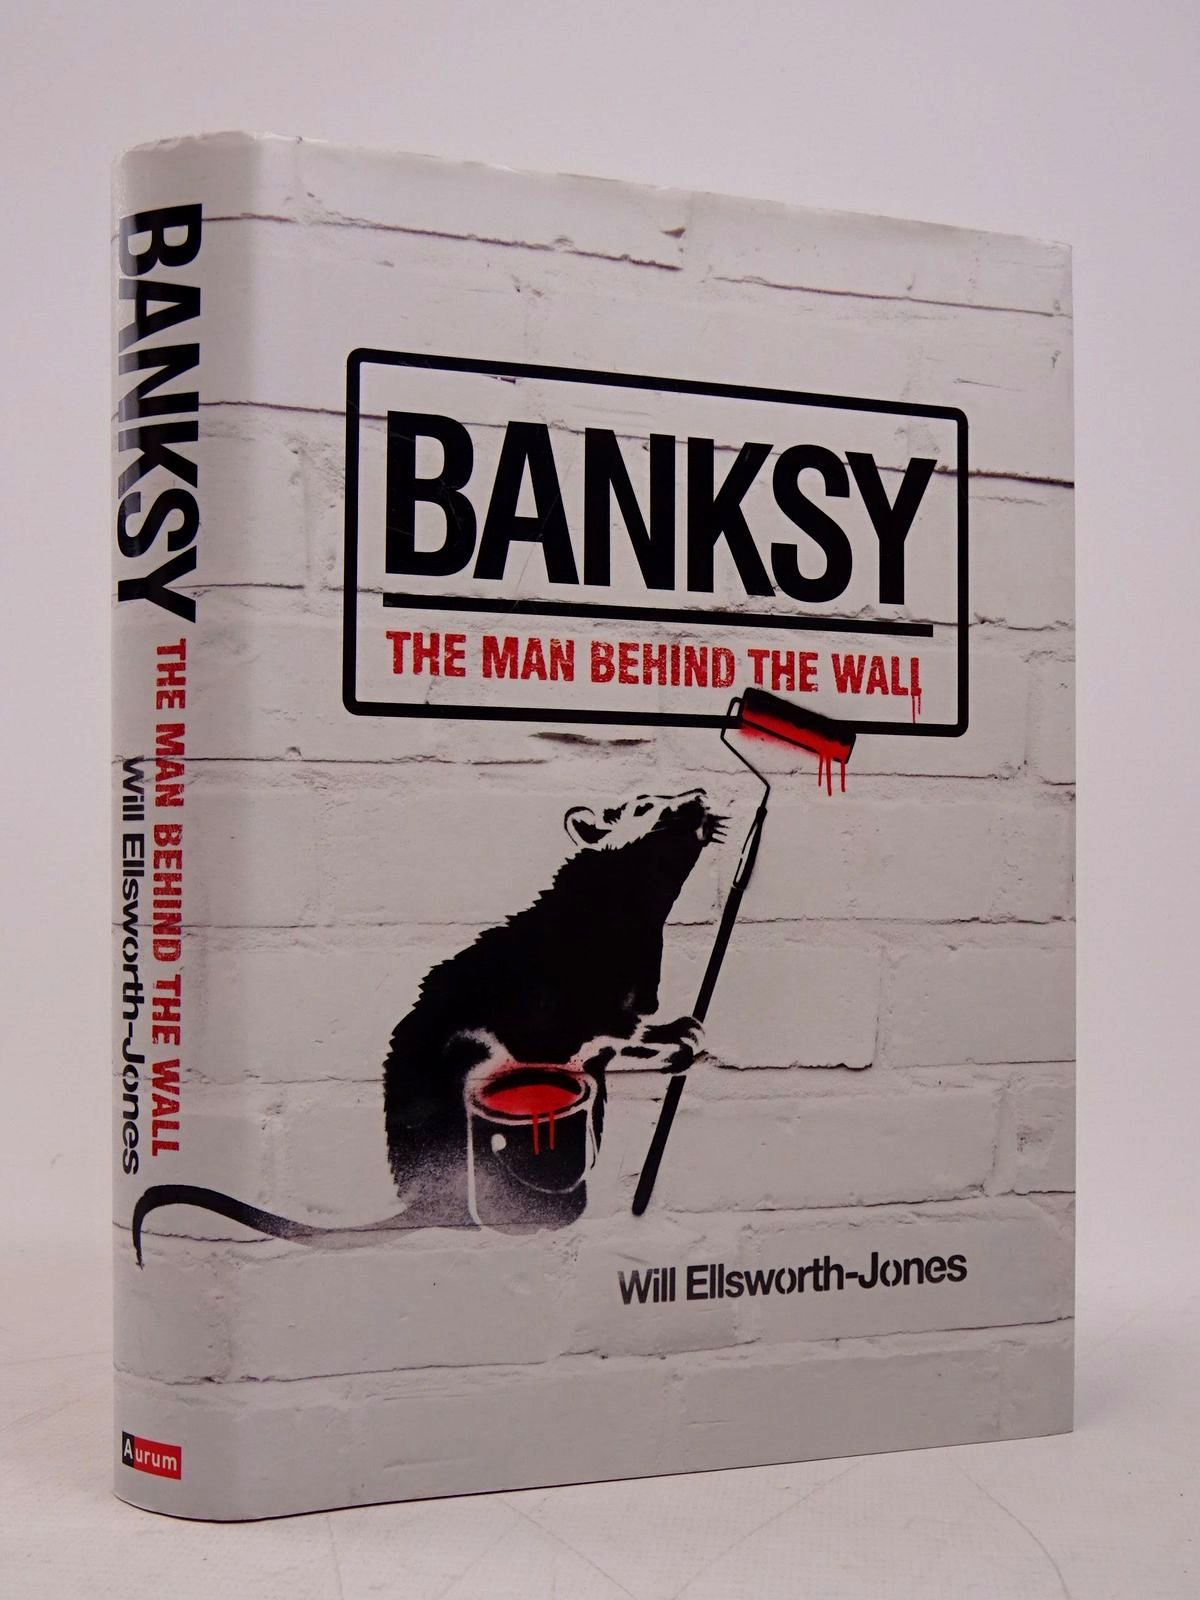 Photo of BANKSY: THE MAN BEHIND THE WALL written by Ellsworth-Jones, Will illustrated by Banksy, published by Aurum Press (STOCK CODE: 1817986)  for sale by Stella & Rose's Books